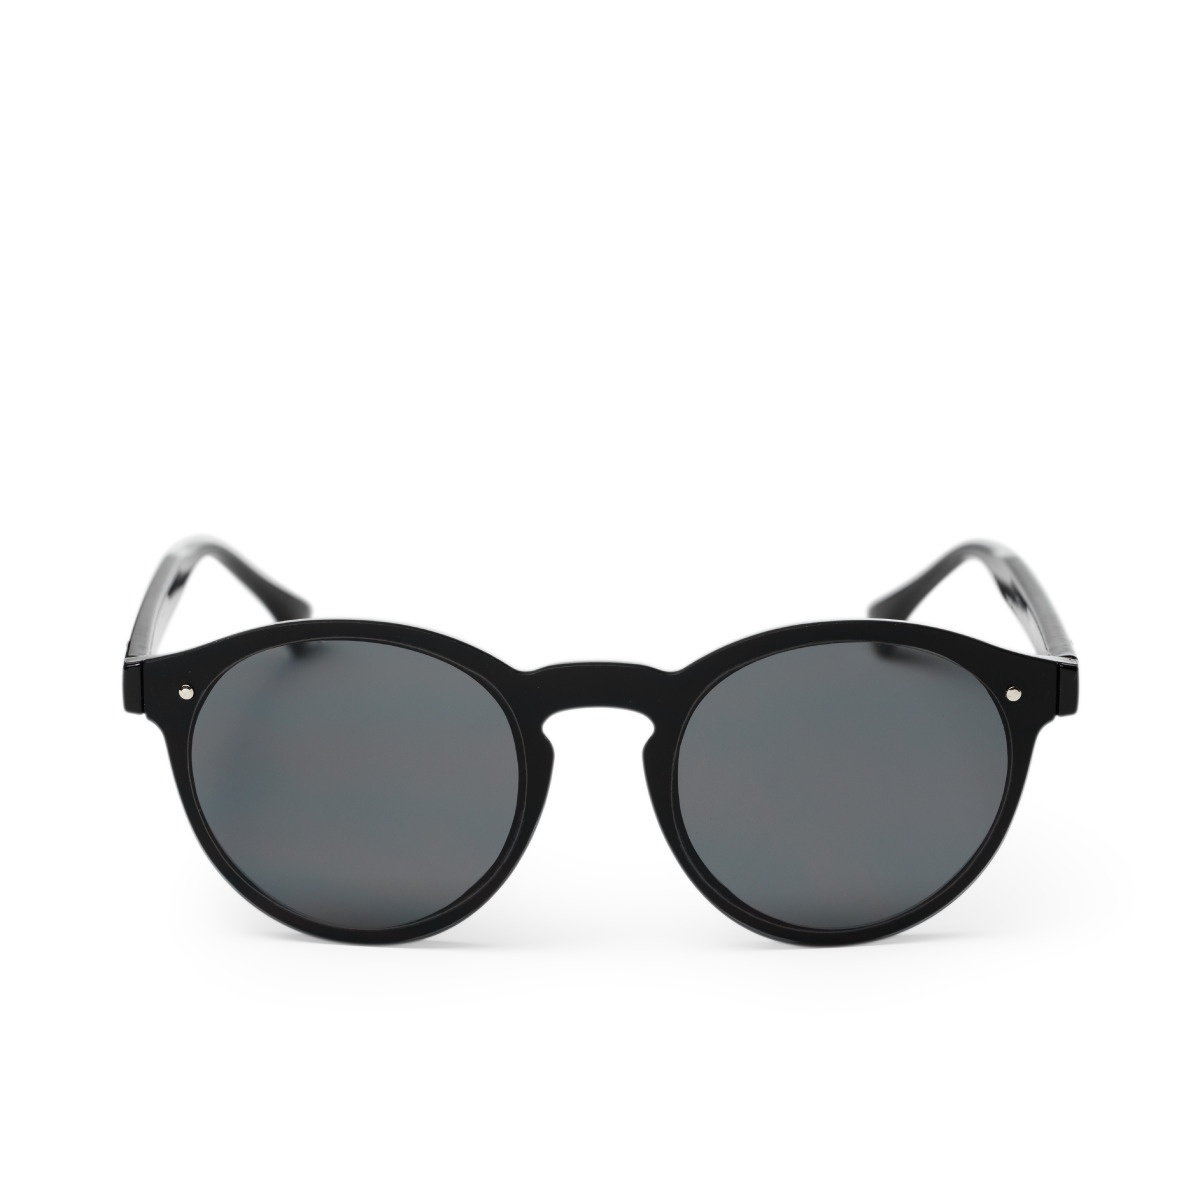 McFly Black Sunglasses from CHPO of Sweden